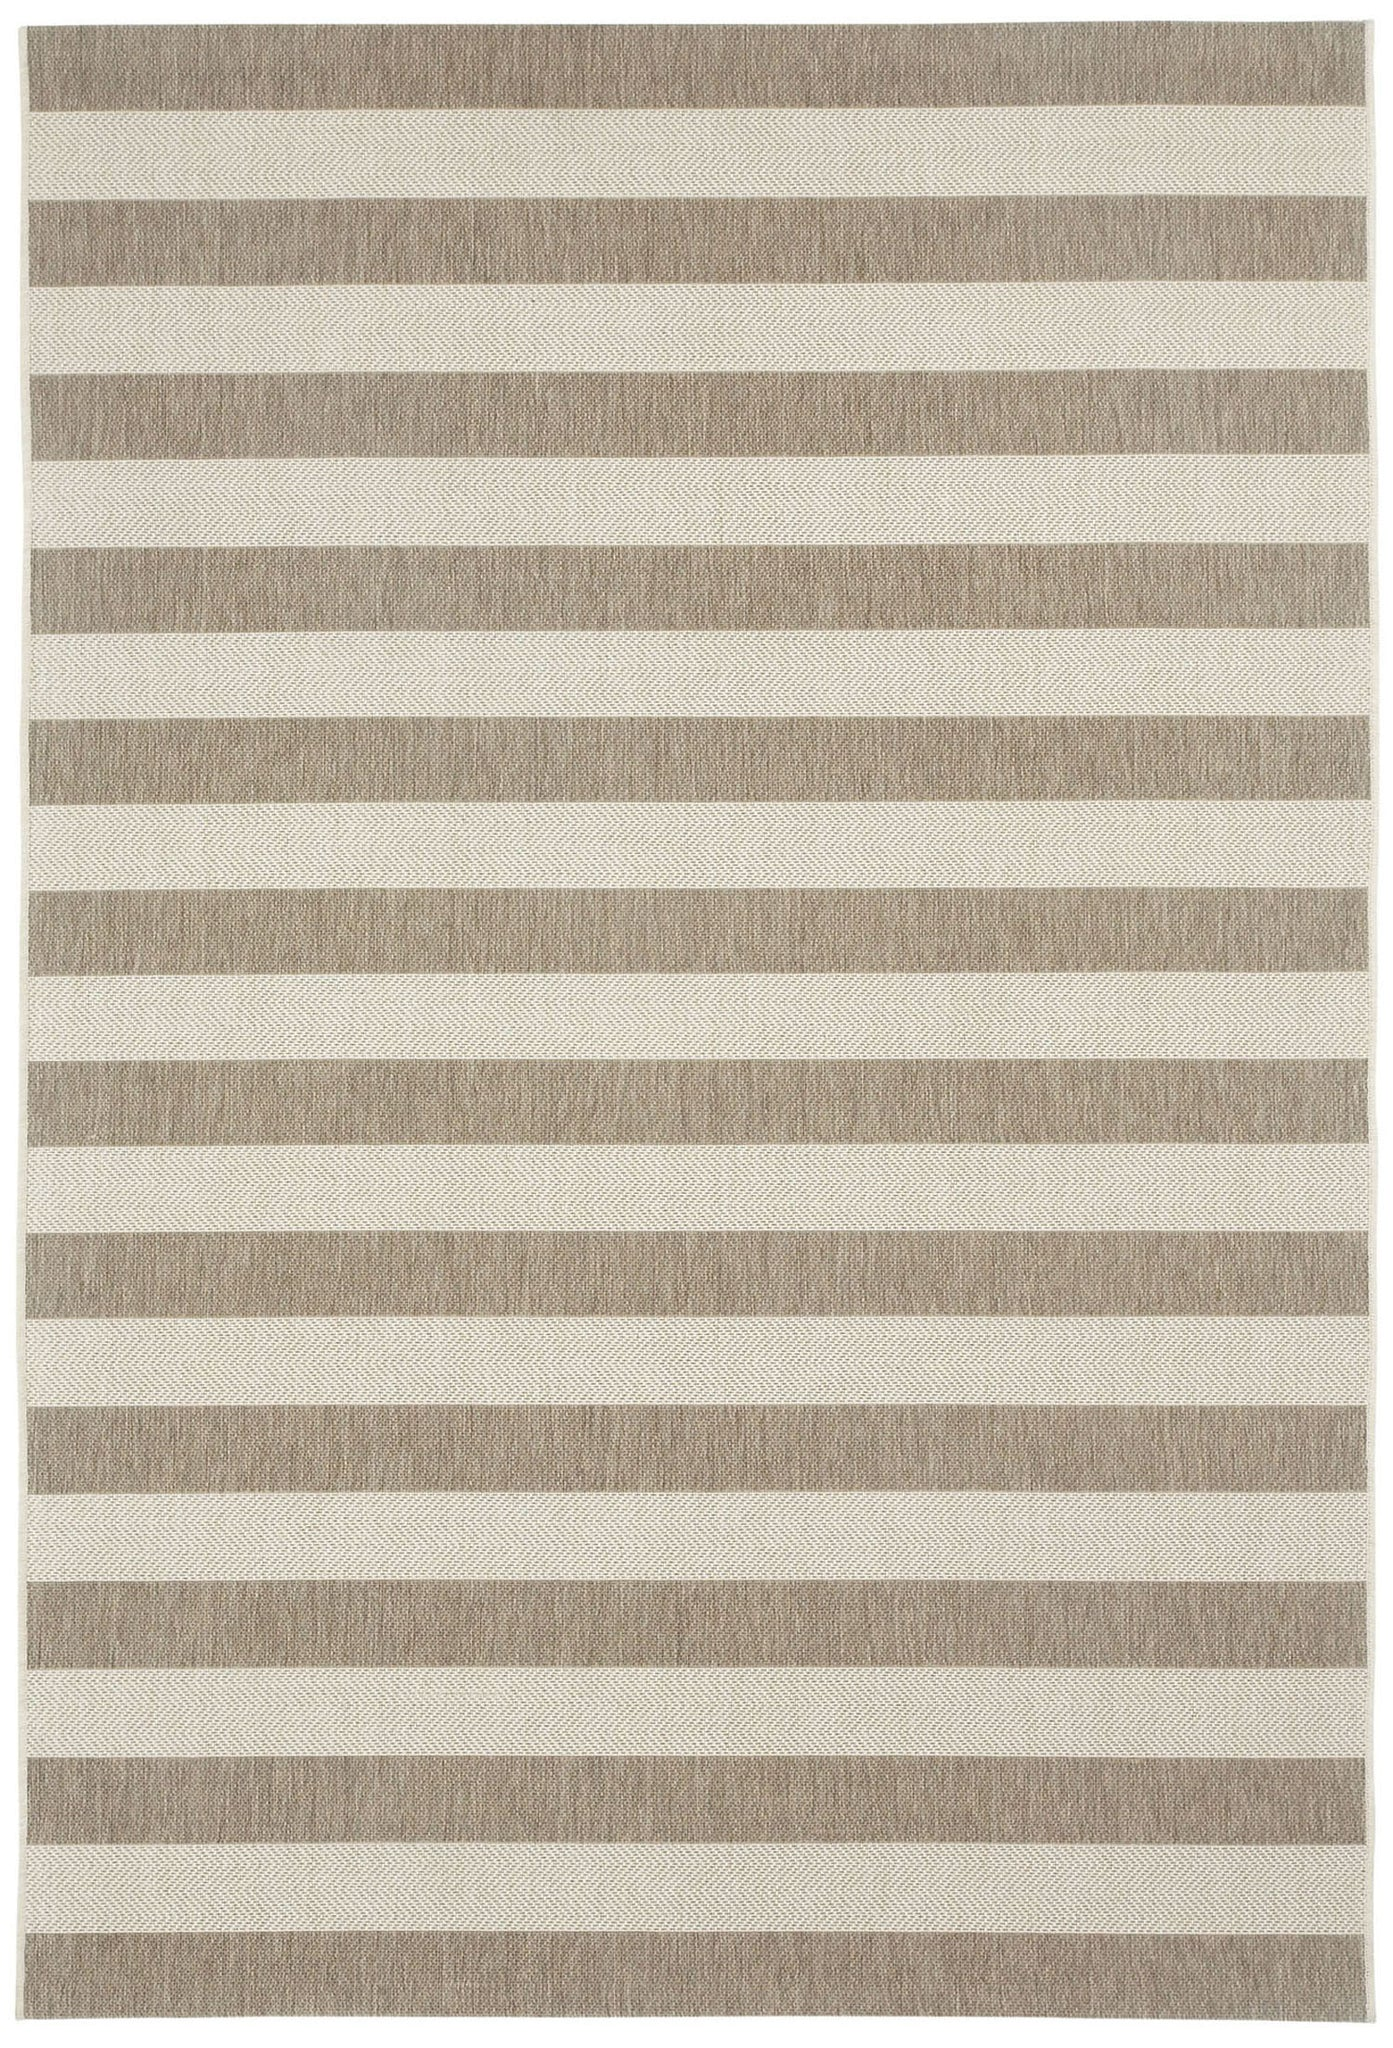 Capel Elsinore Stripe 4730 Wheat 675 Area Rug main image